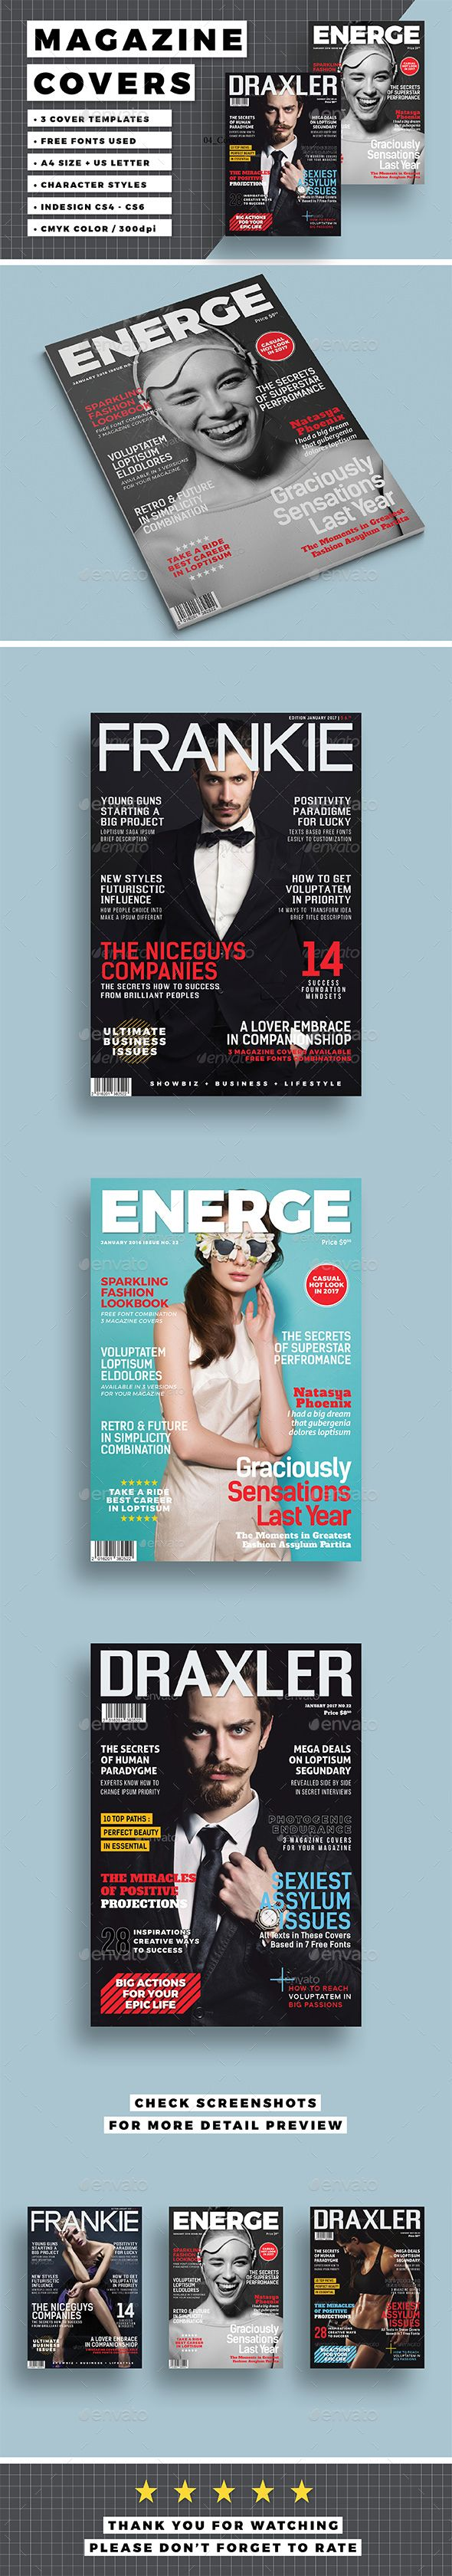 Magazine Cover Template Magazine Cover Template Cover Template